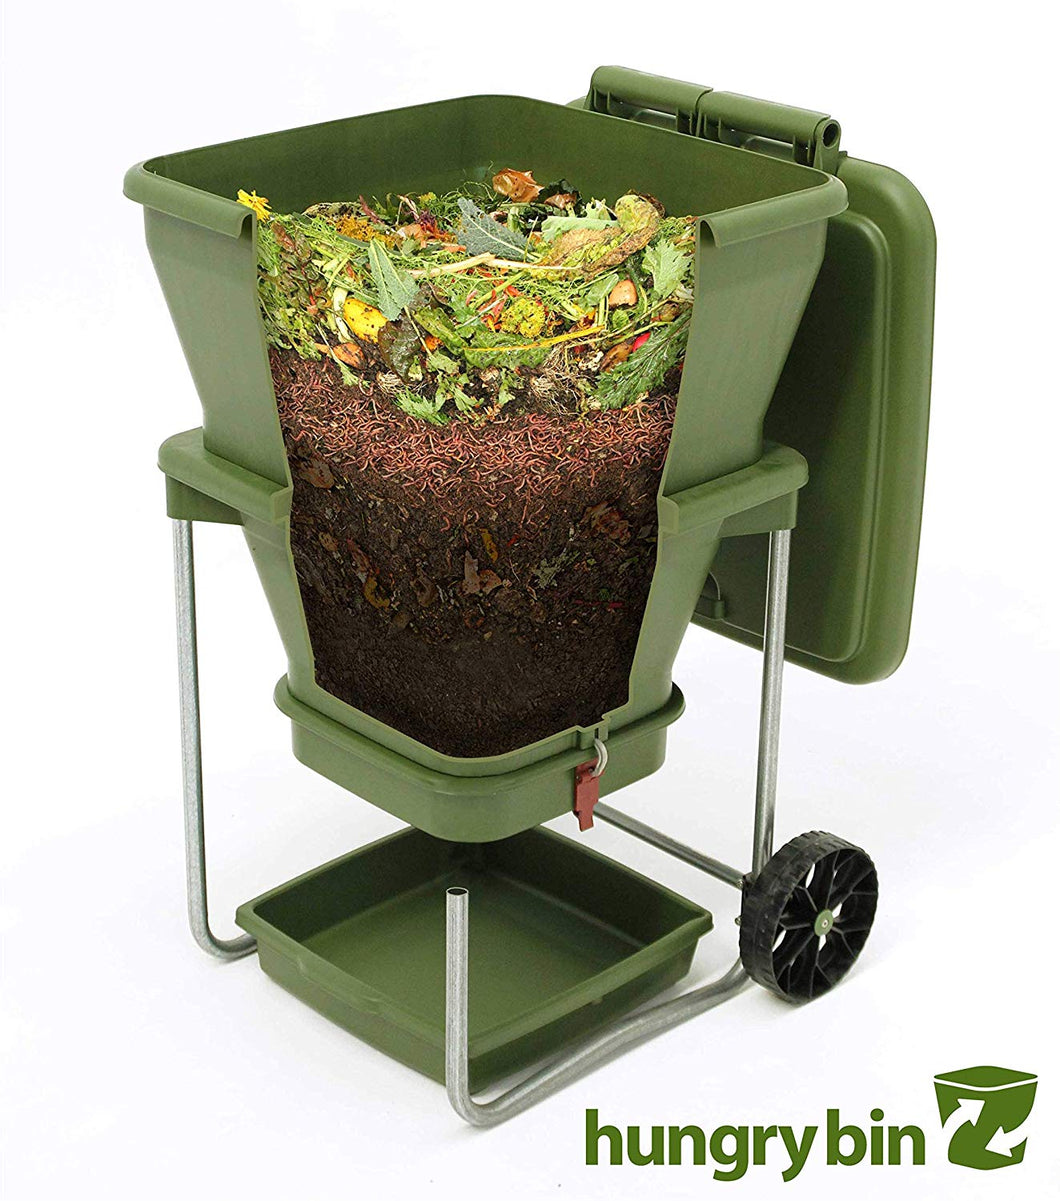 Hungry Bin Worm Composting System (backordered until June 8th)